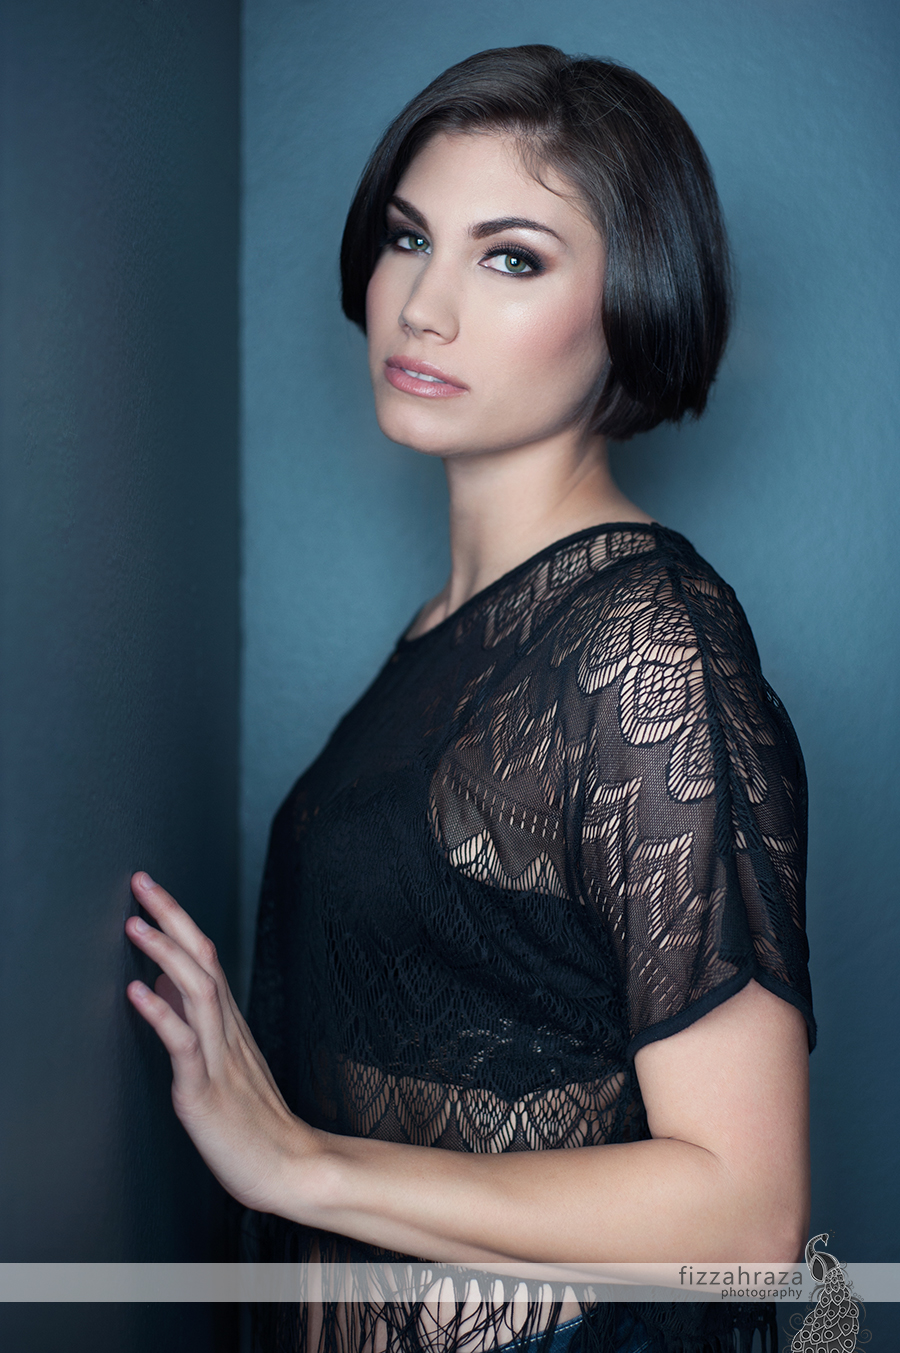 lace top glamour studio portrait of a woman with short hair bob